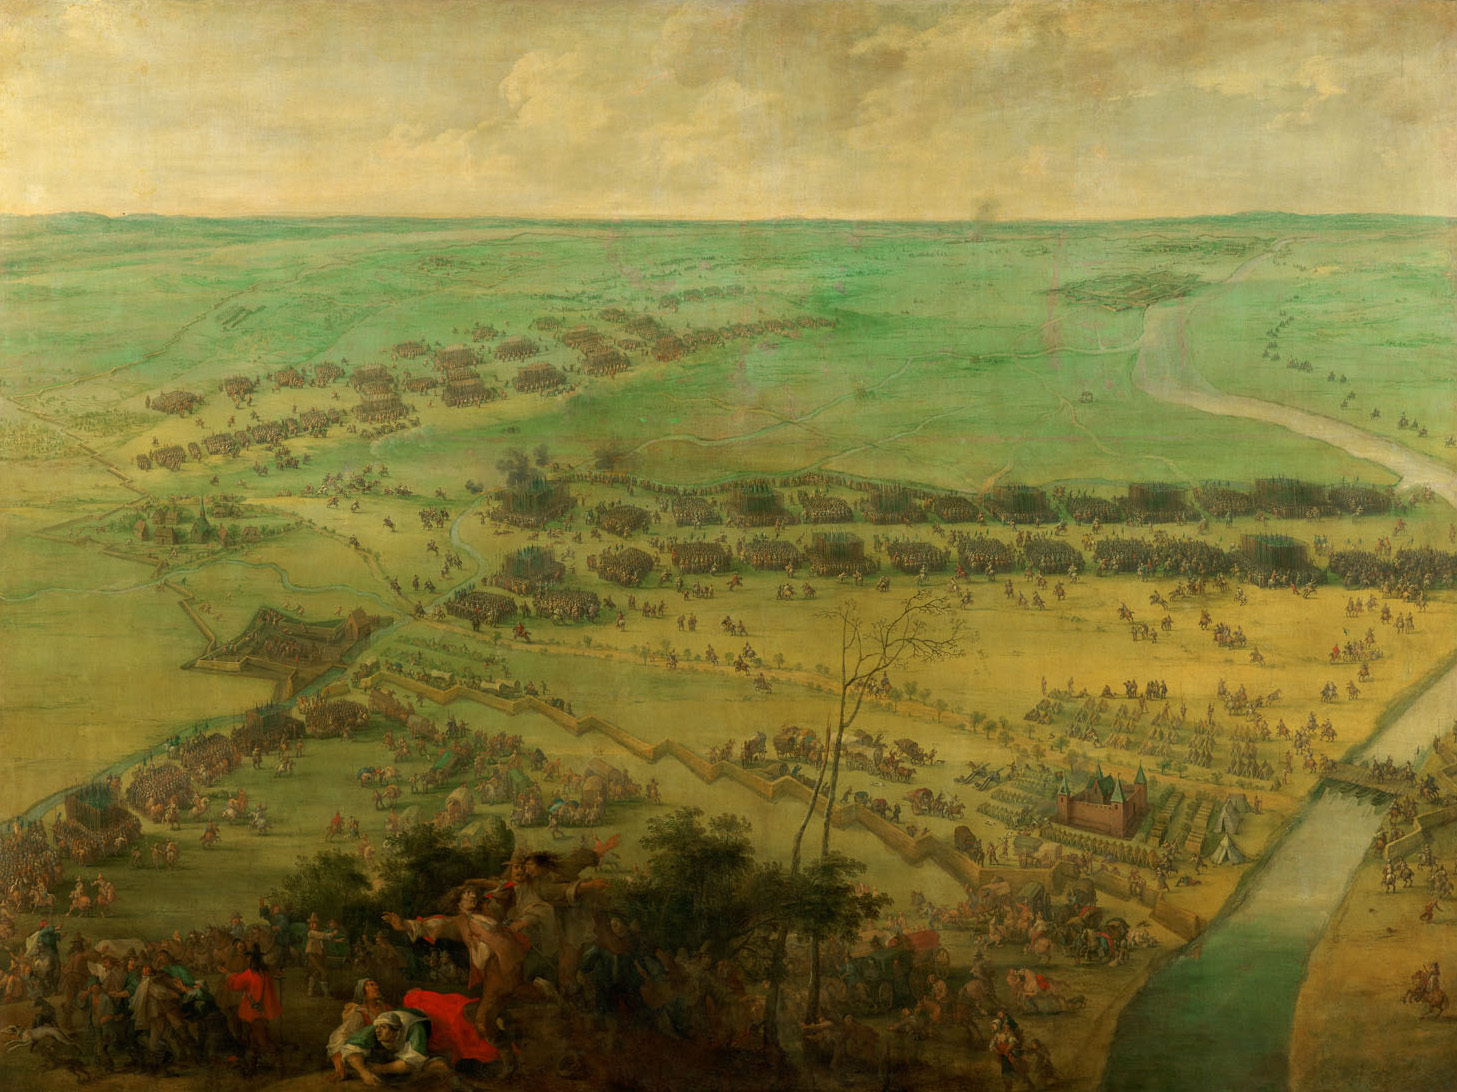 Peter_Snayers_-_The_battle_for_the_relief_of_Thionville._2nd_Phase,_1639